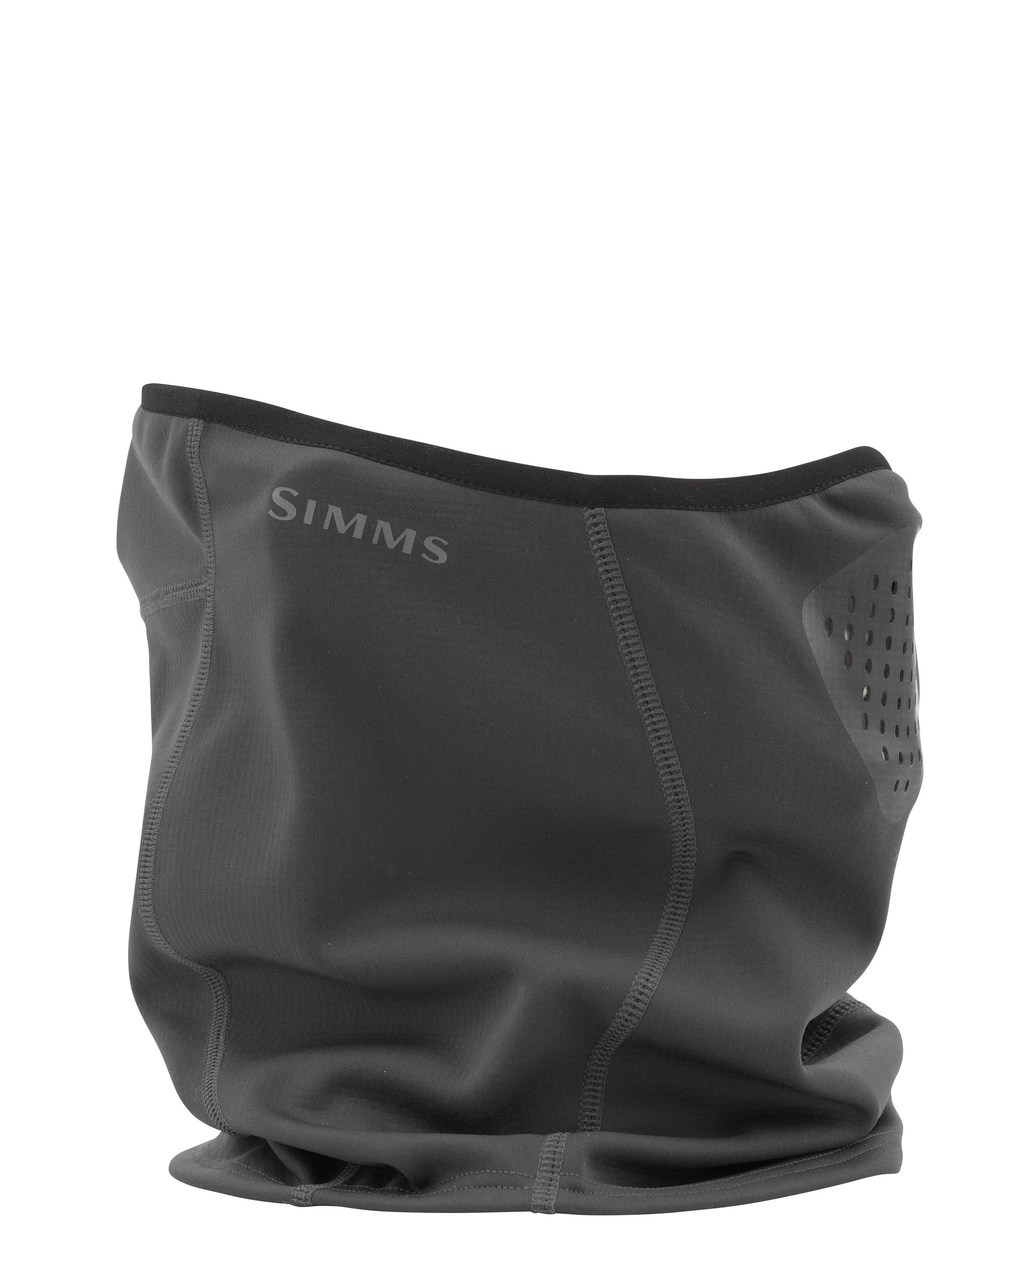 Image of   Simms Guide Windblock Neck Gaiter Raven